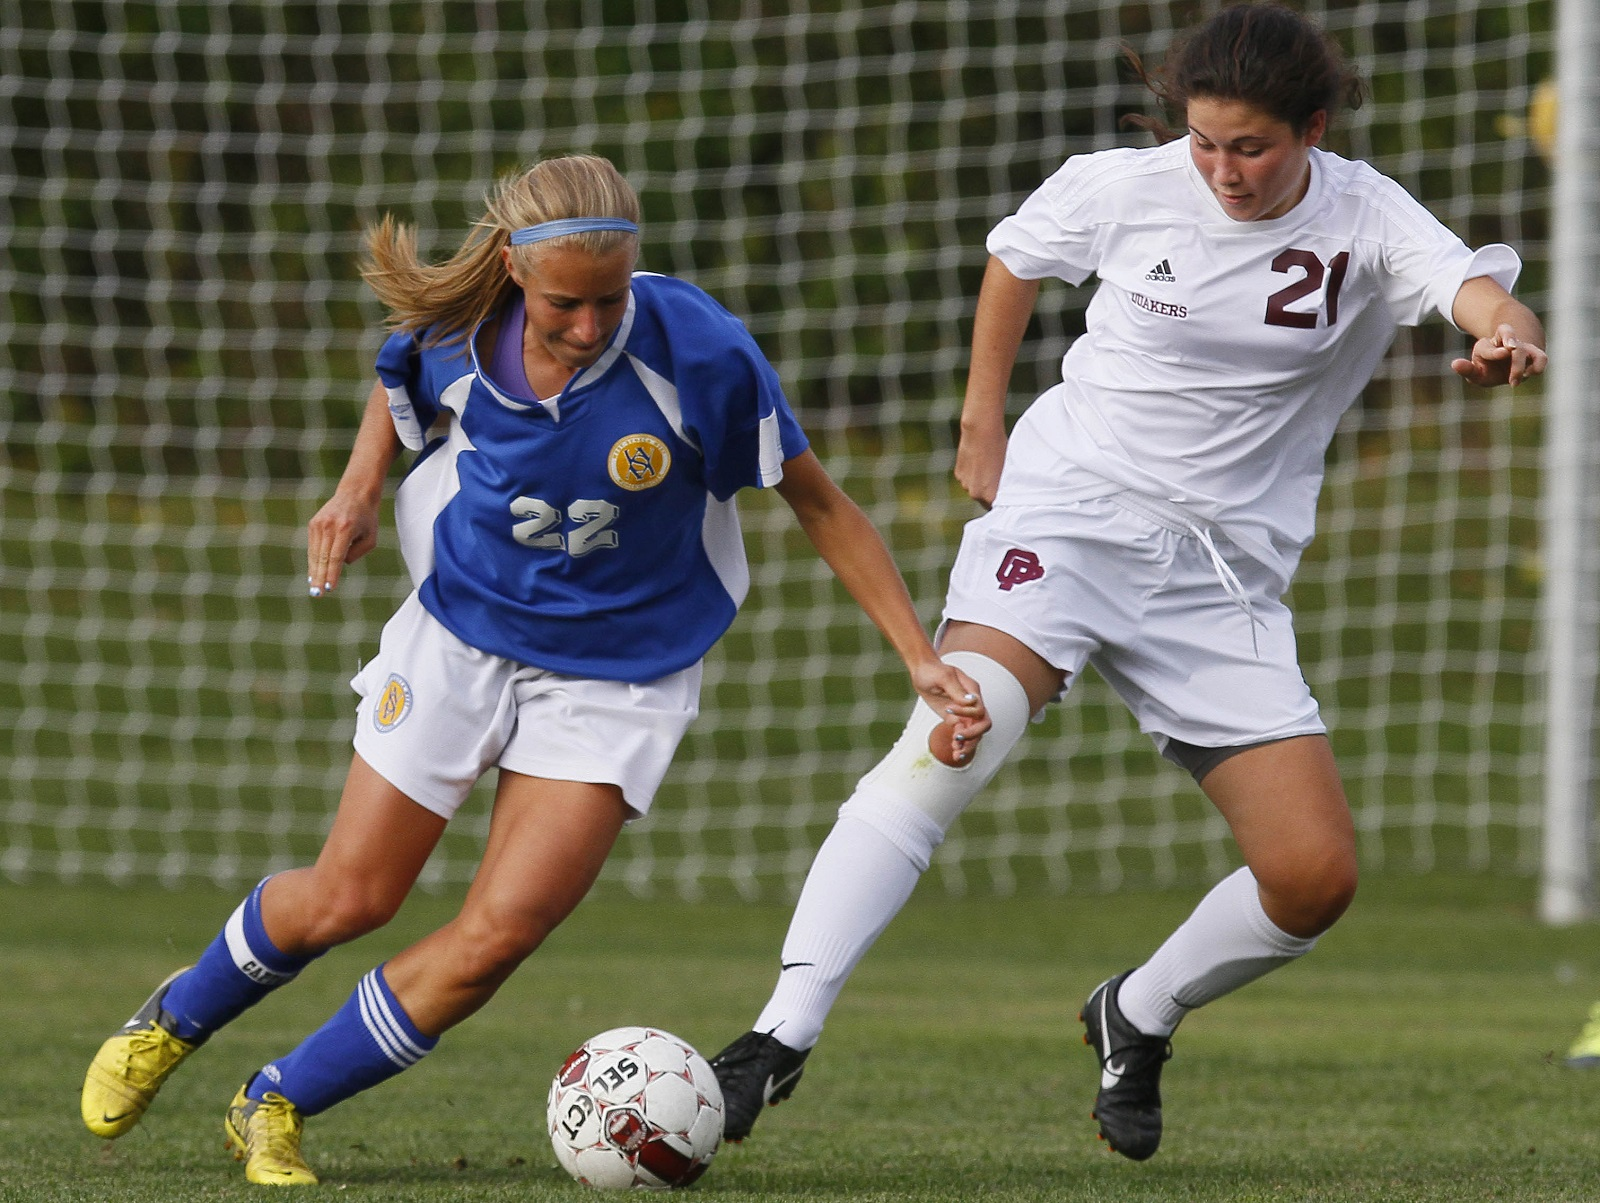 Orchard Park's Courtney Hartnett, right, tries to poke the ball away from West Seneca West's Nicolette Nigro in 2012. (Mark Mulville/Buffalo News file photo)